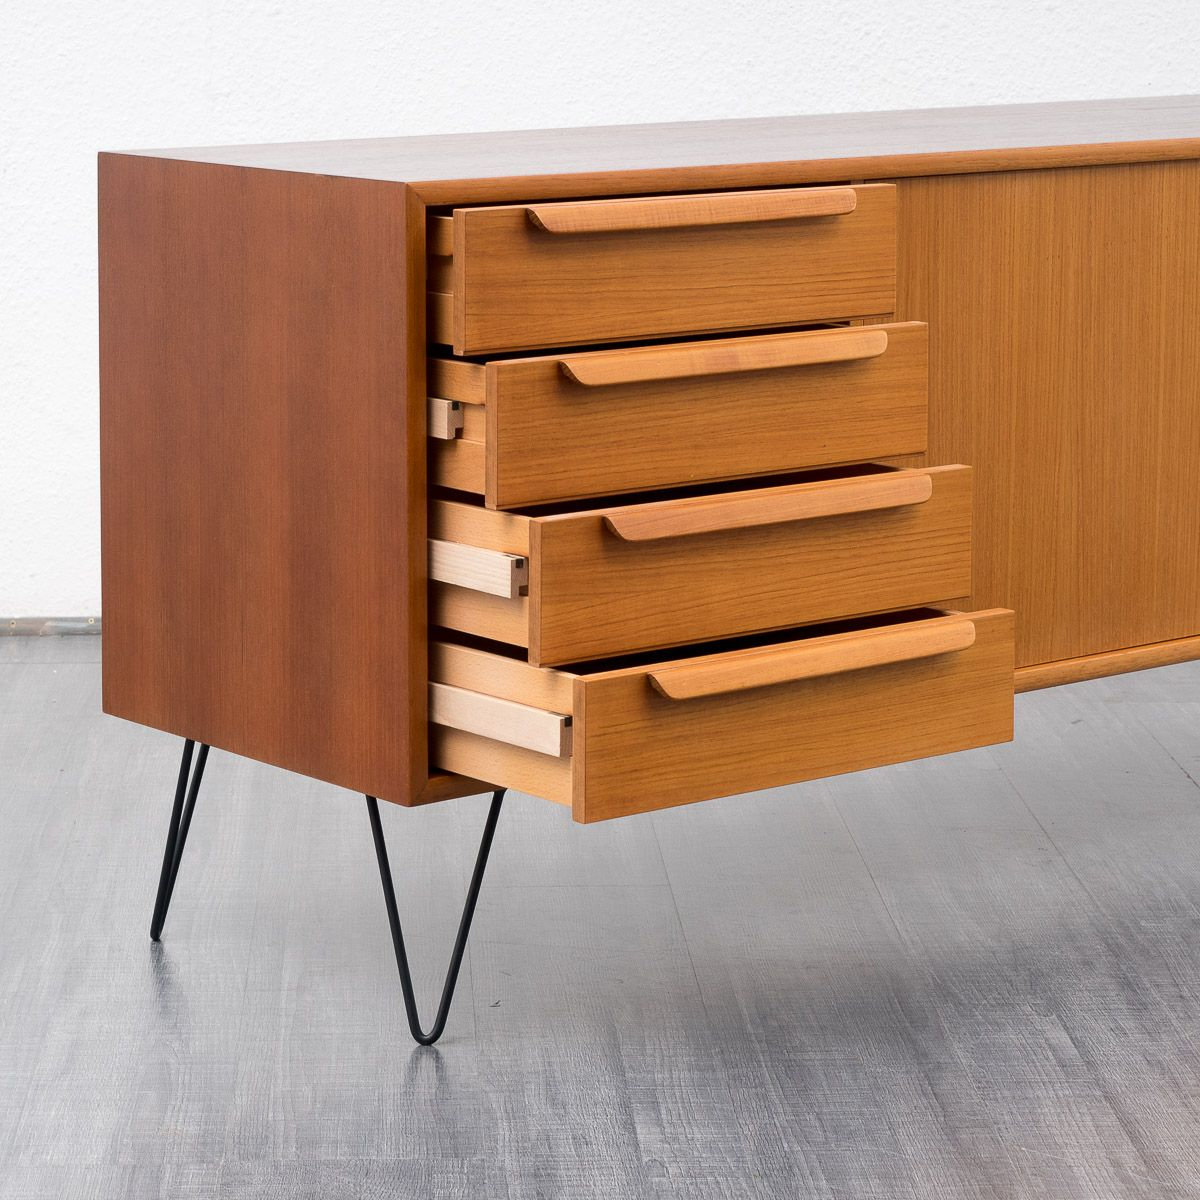 Teak sideboard with hairpin legs from wk mobel 1960s for for Vintage mobel sideboard